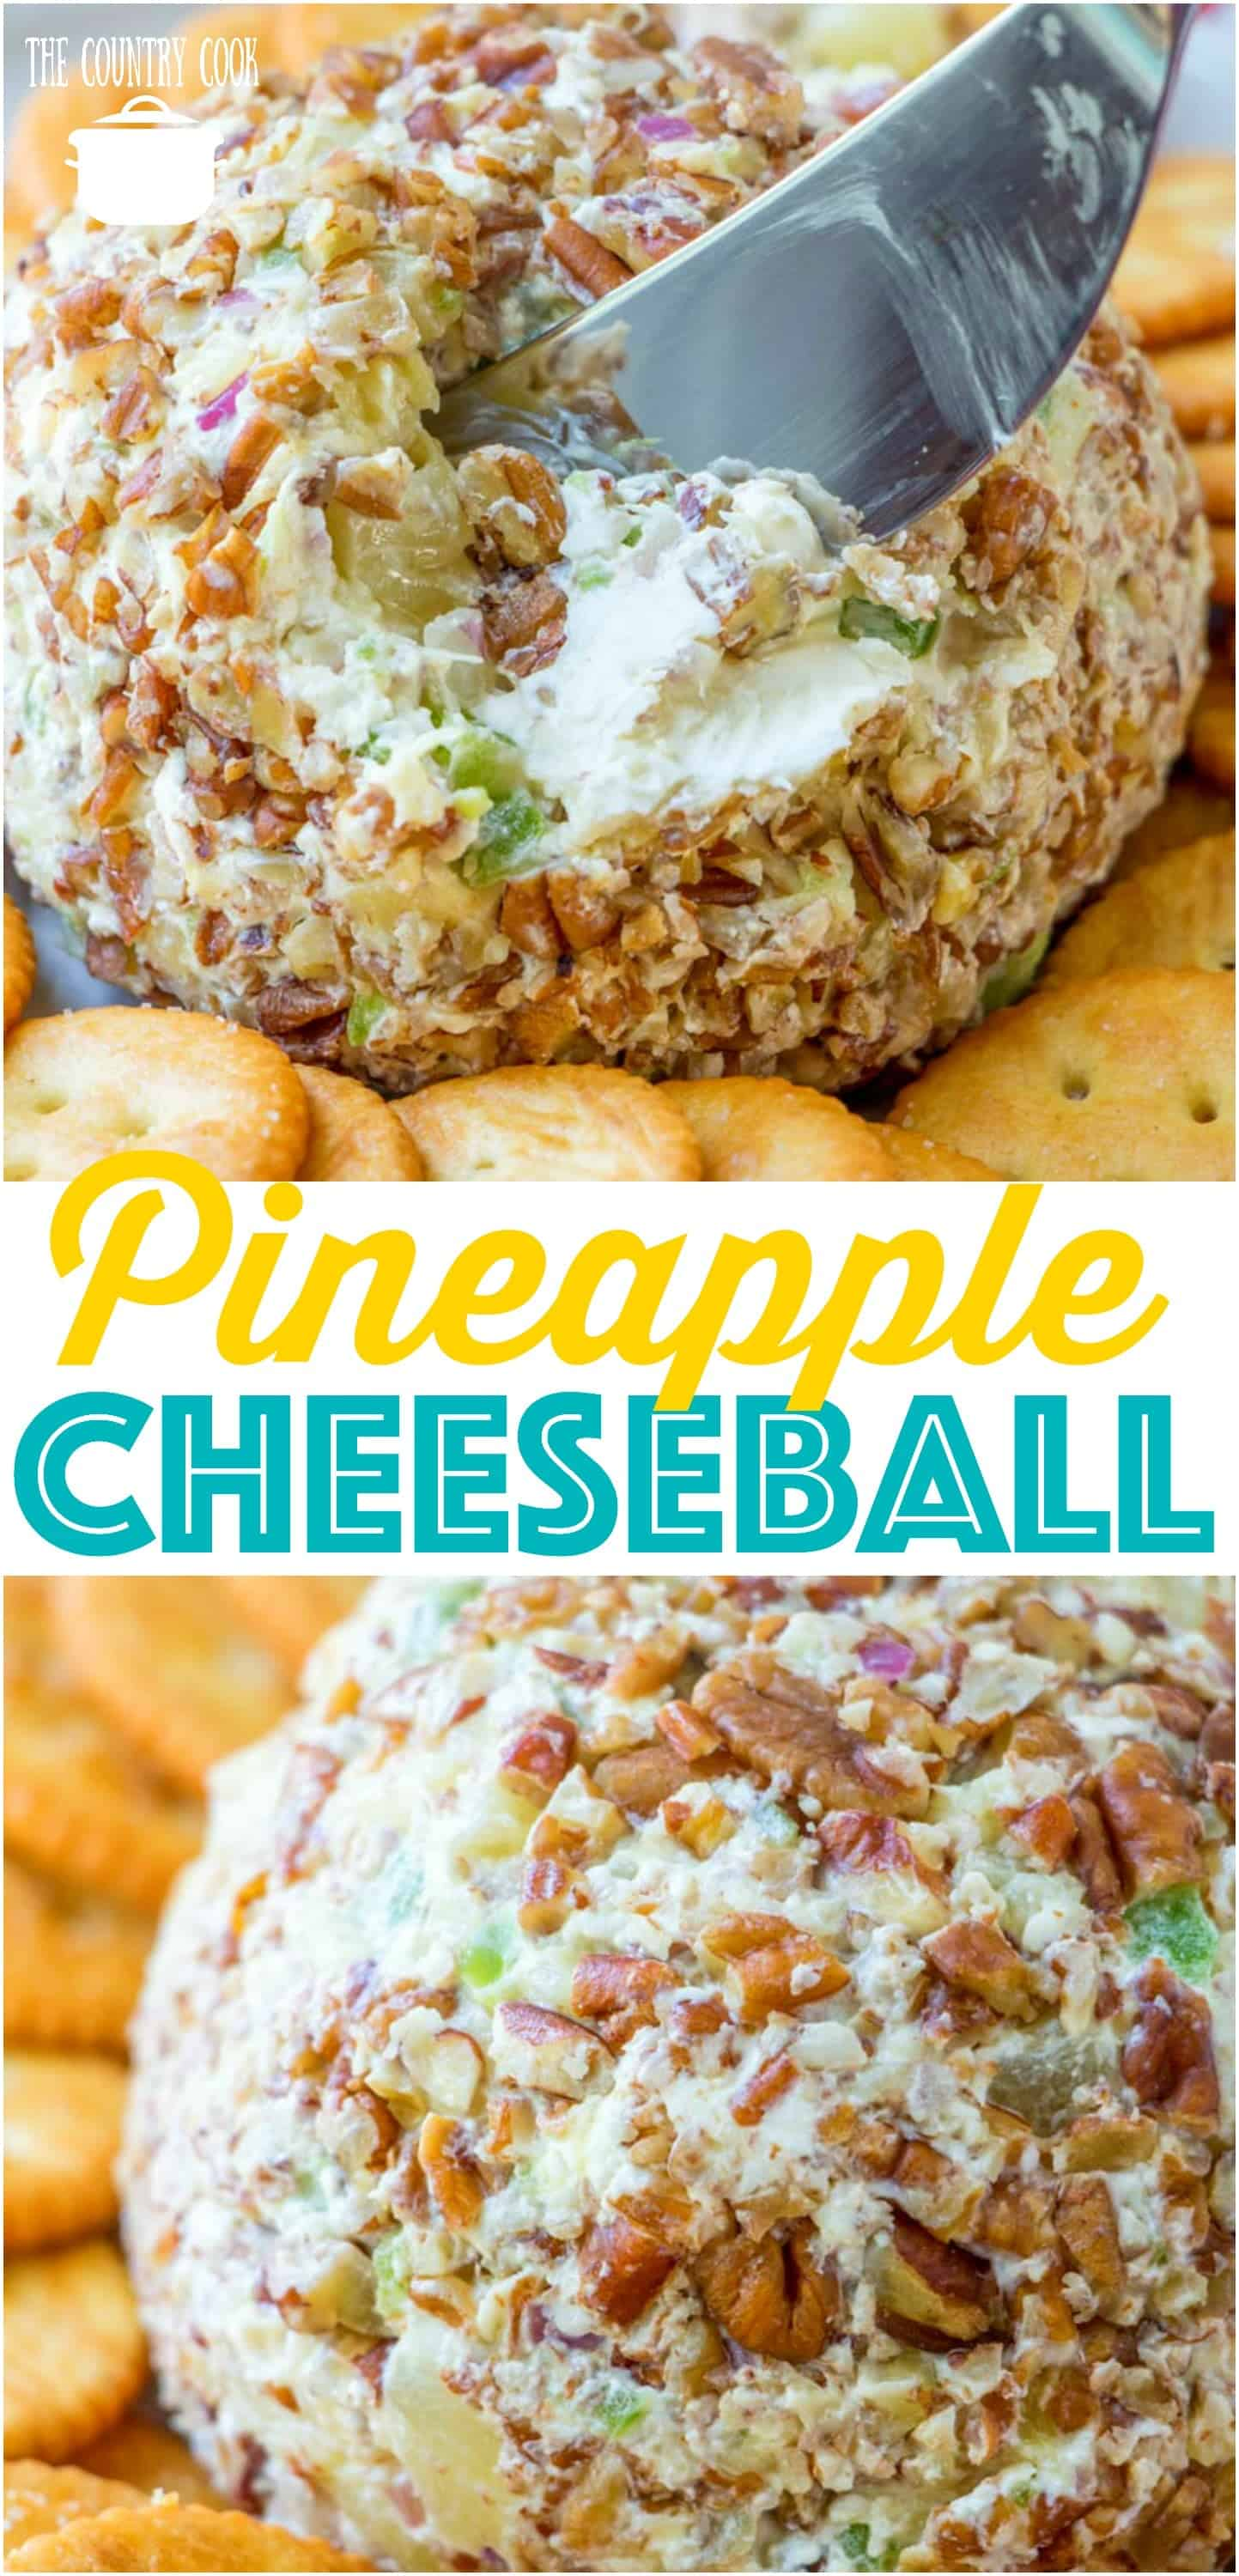 The Best Pineapple Cheeseball recipe from The Country Cook #cheeseball #creamcheese #recipes #ideas #appetizer #holiday #easy #thebest #party #entertaining #pecans